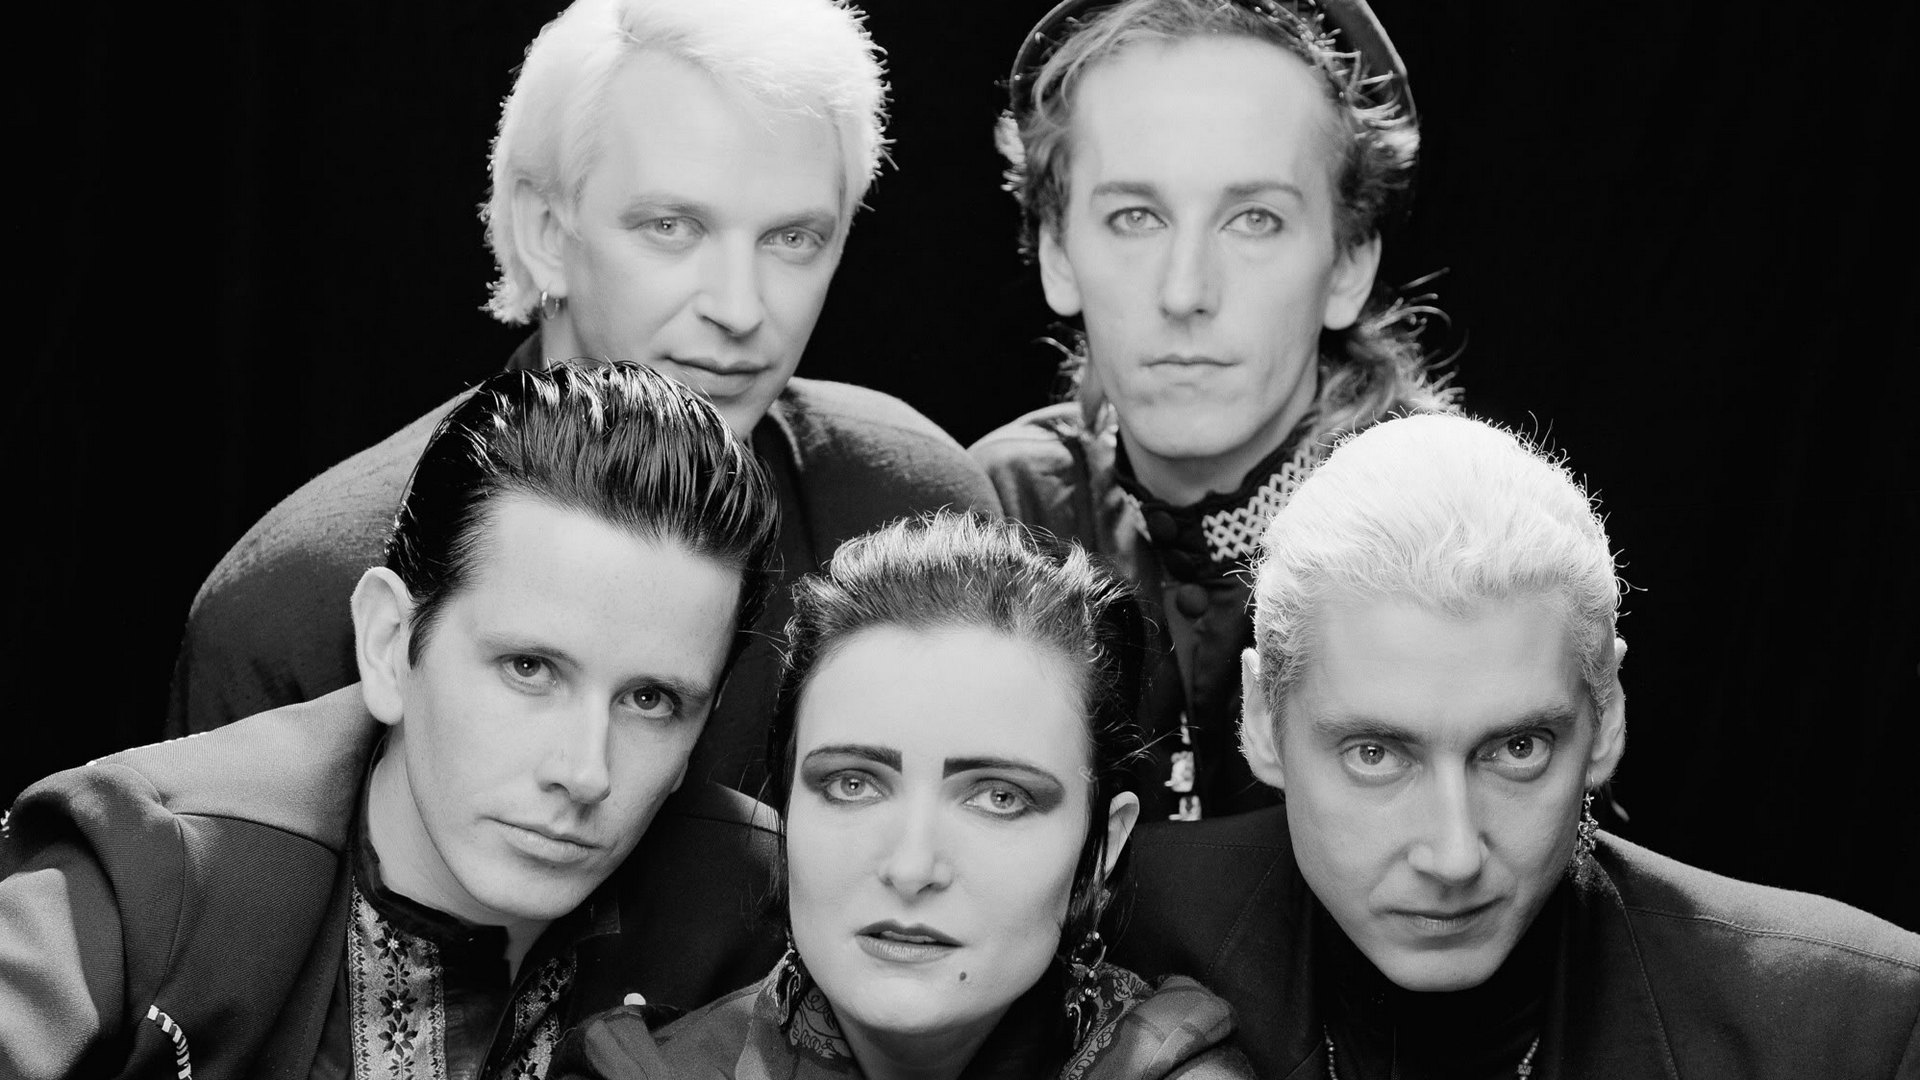 Siouxsie and the Banshees: Diosa de la mitología rockera